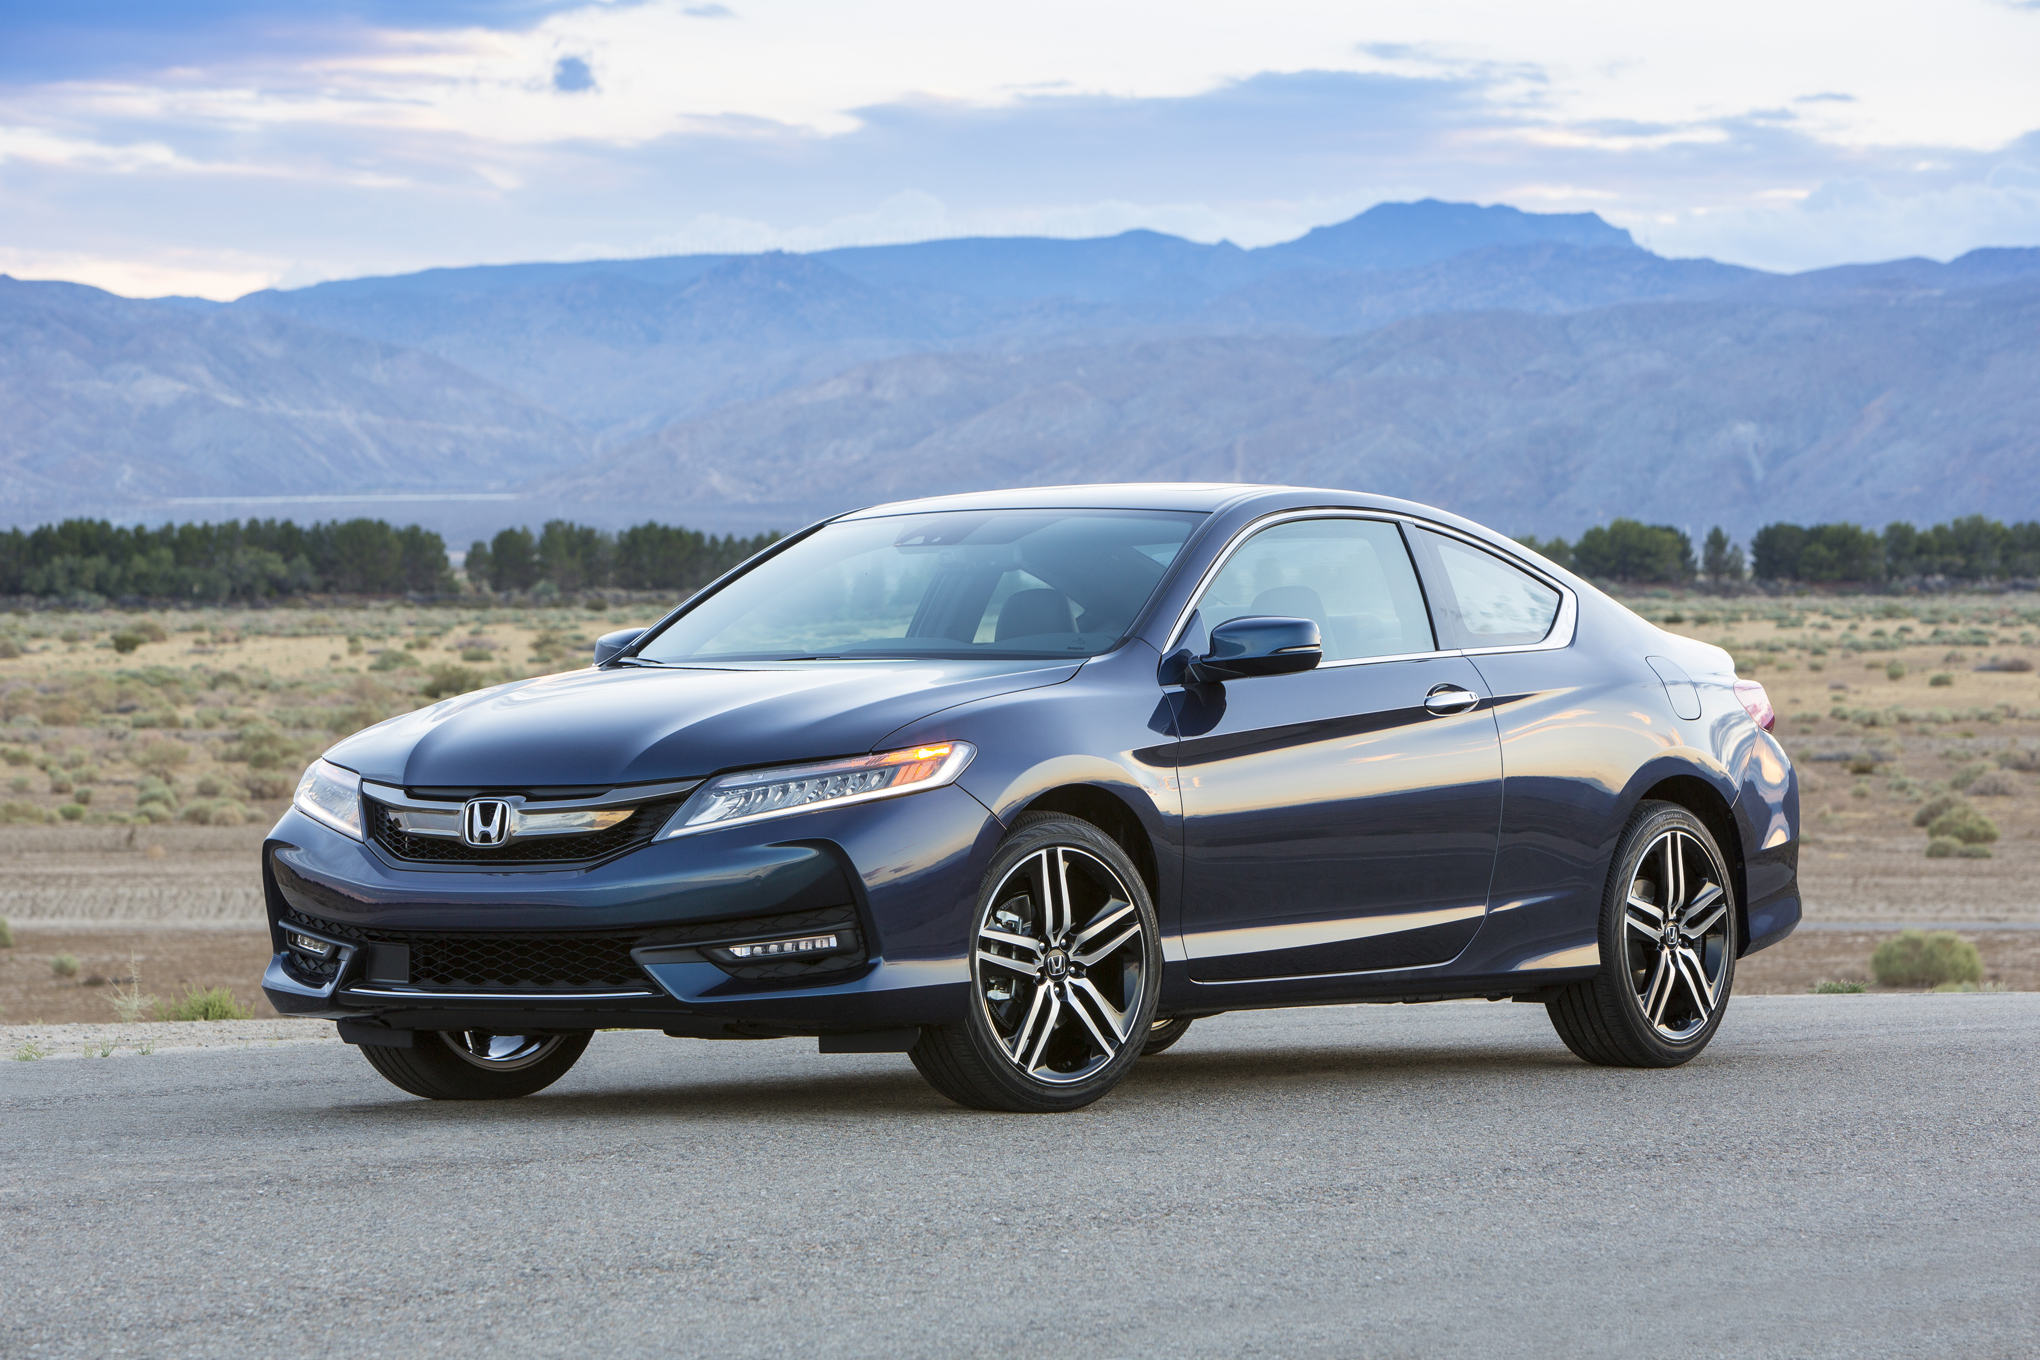 Accord Coupe vs  Mustang: 5 Reasons to Go Honda and 5 More